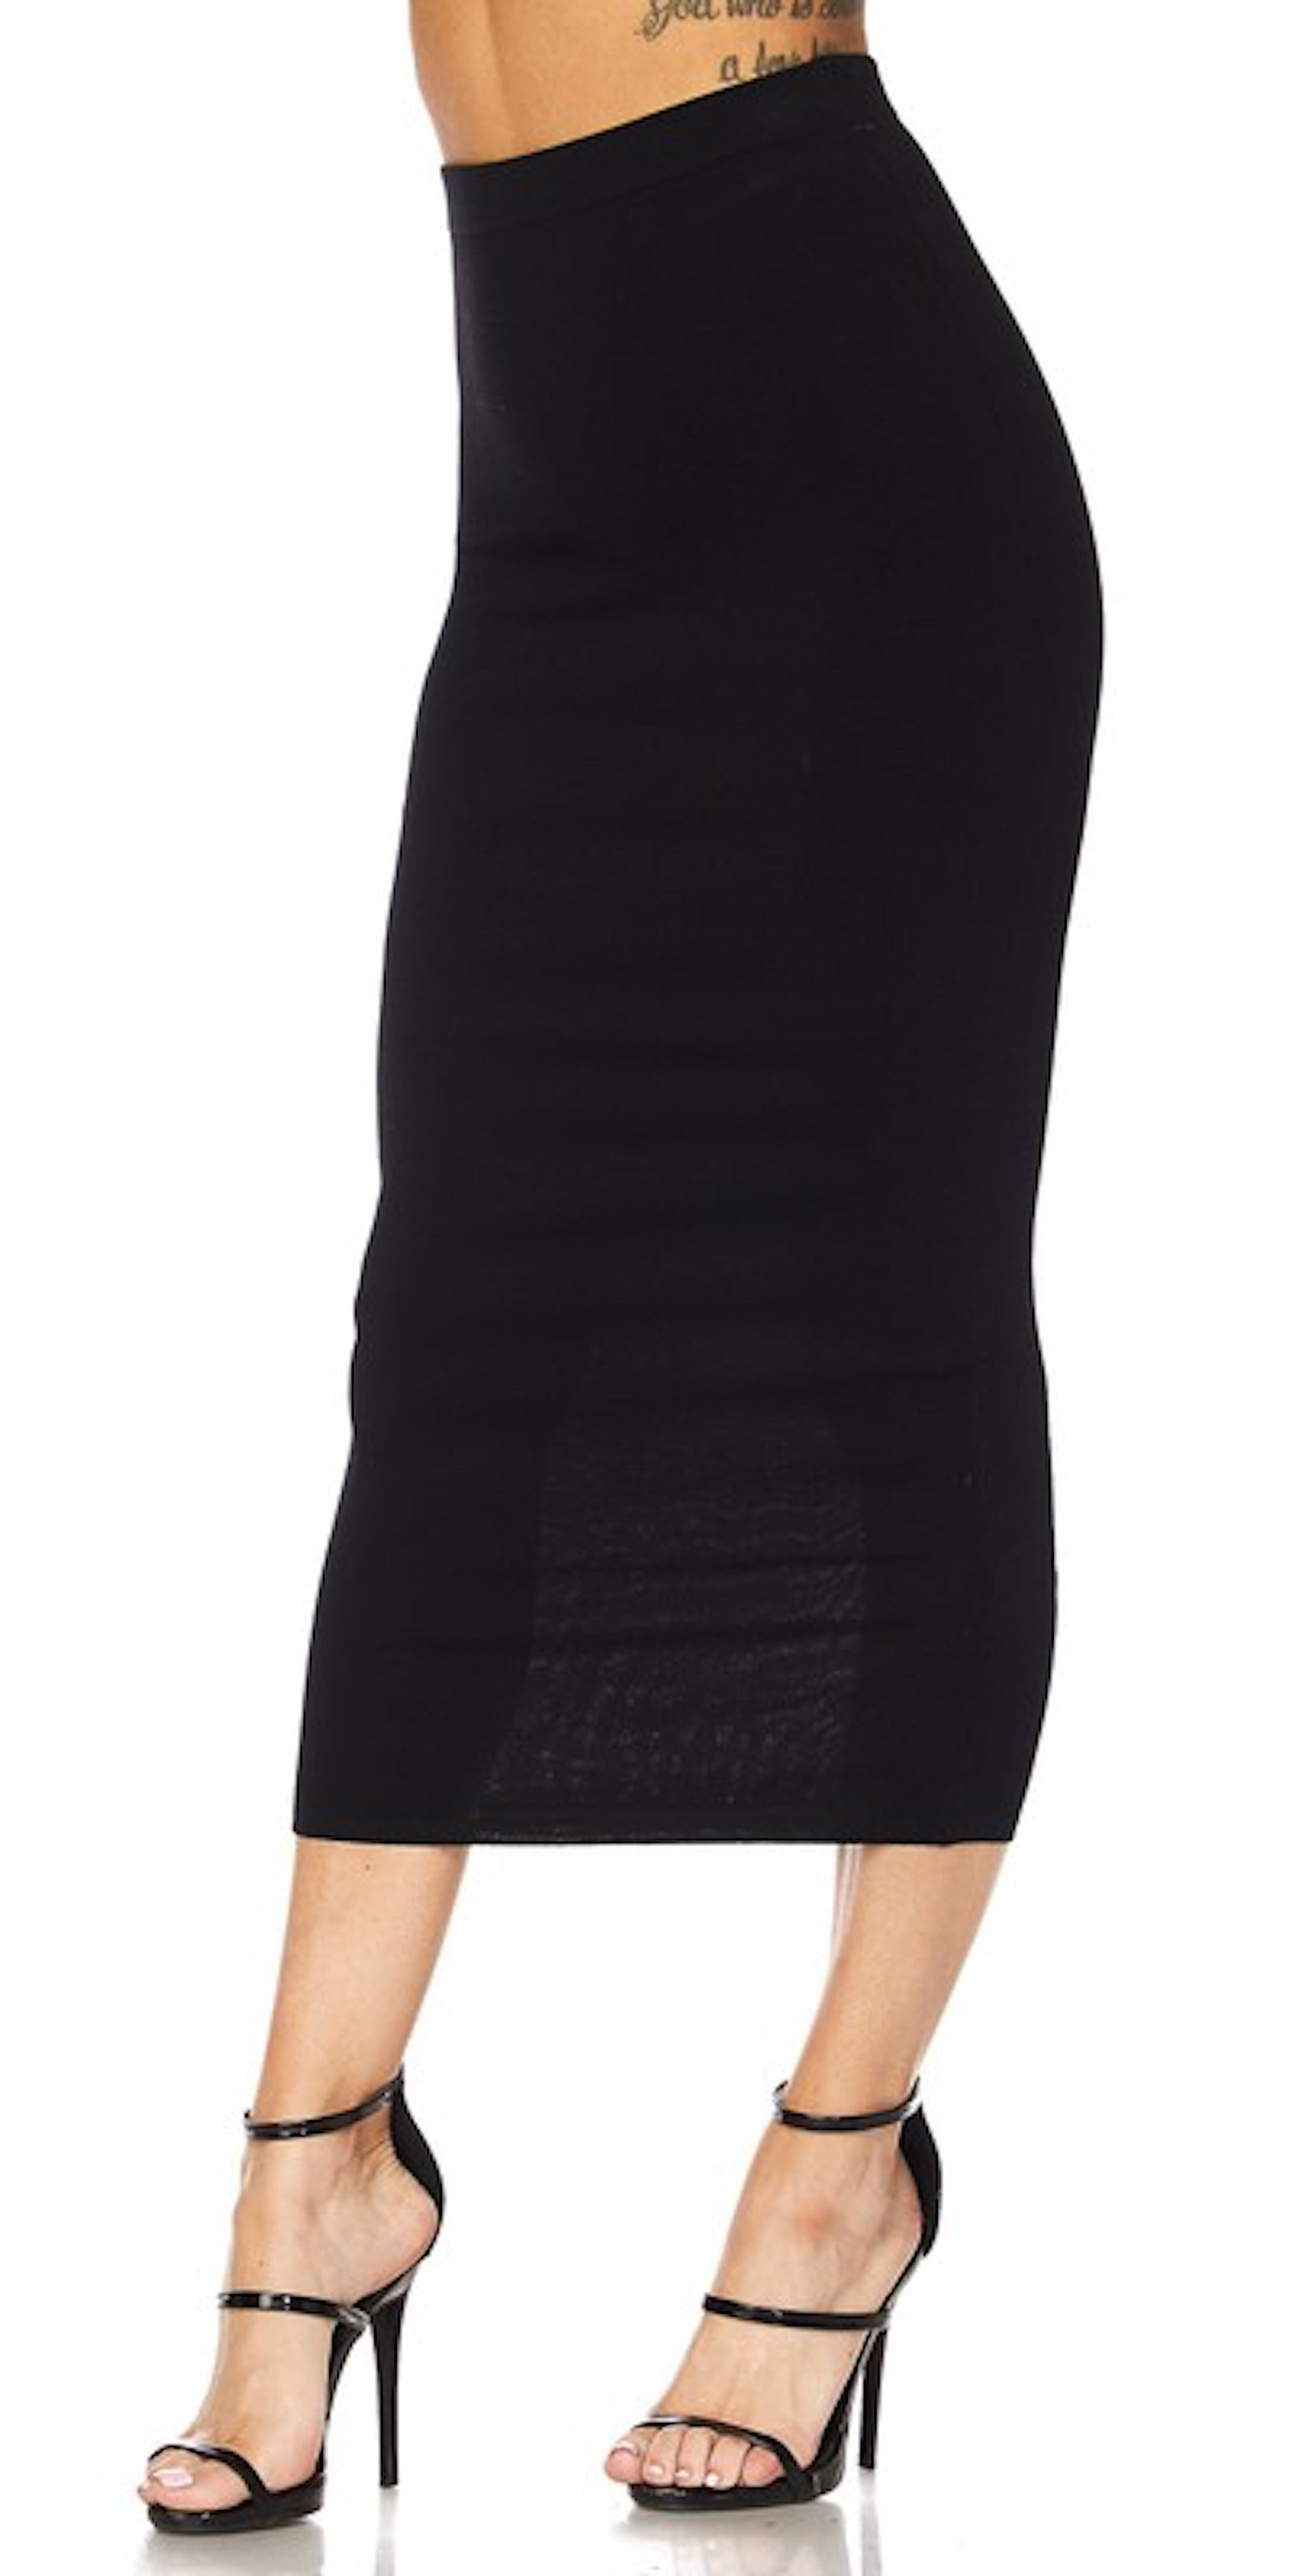 Black Long Pencil Skirt